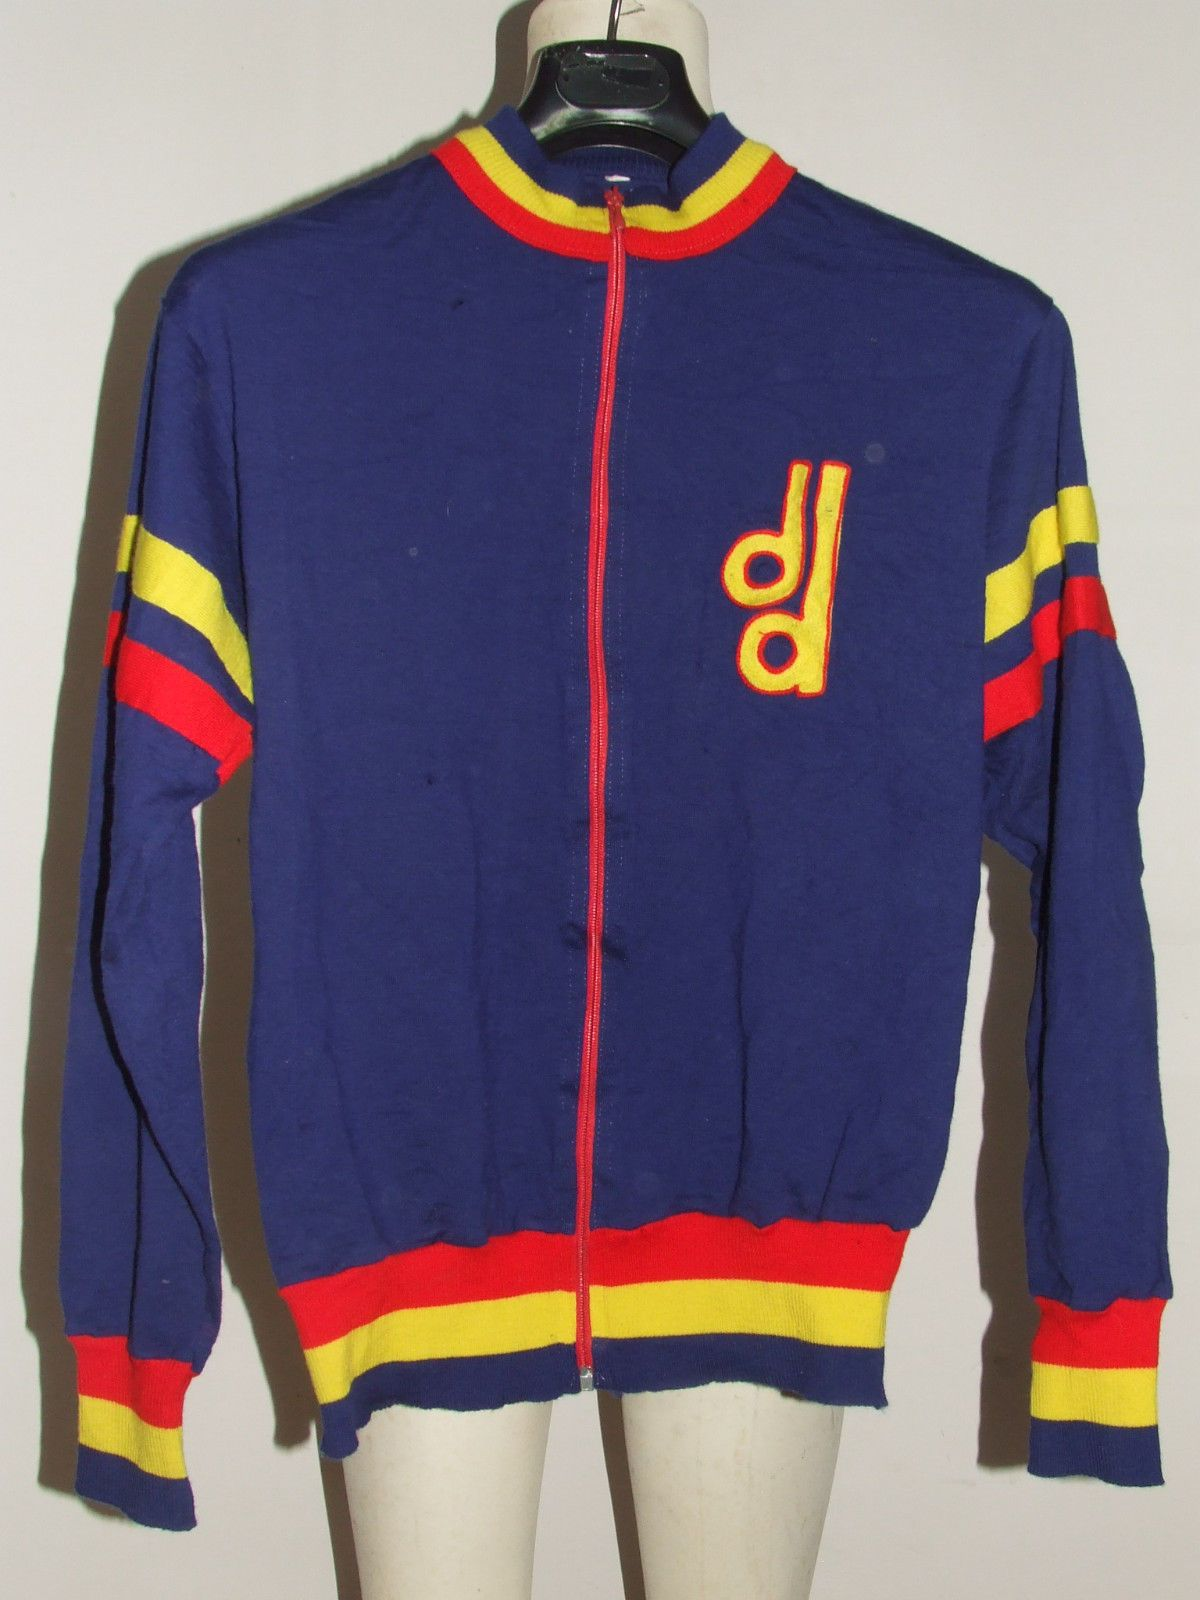 a02bd8377 SHIRT BIKE JACKET SHIRT MAILLOT CYCLING VINTAGE 70 S DANES WOOL EMBROIDERED